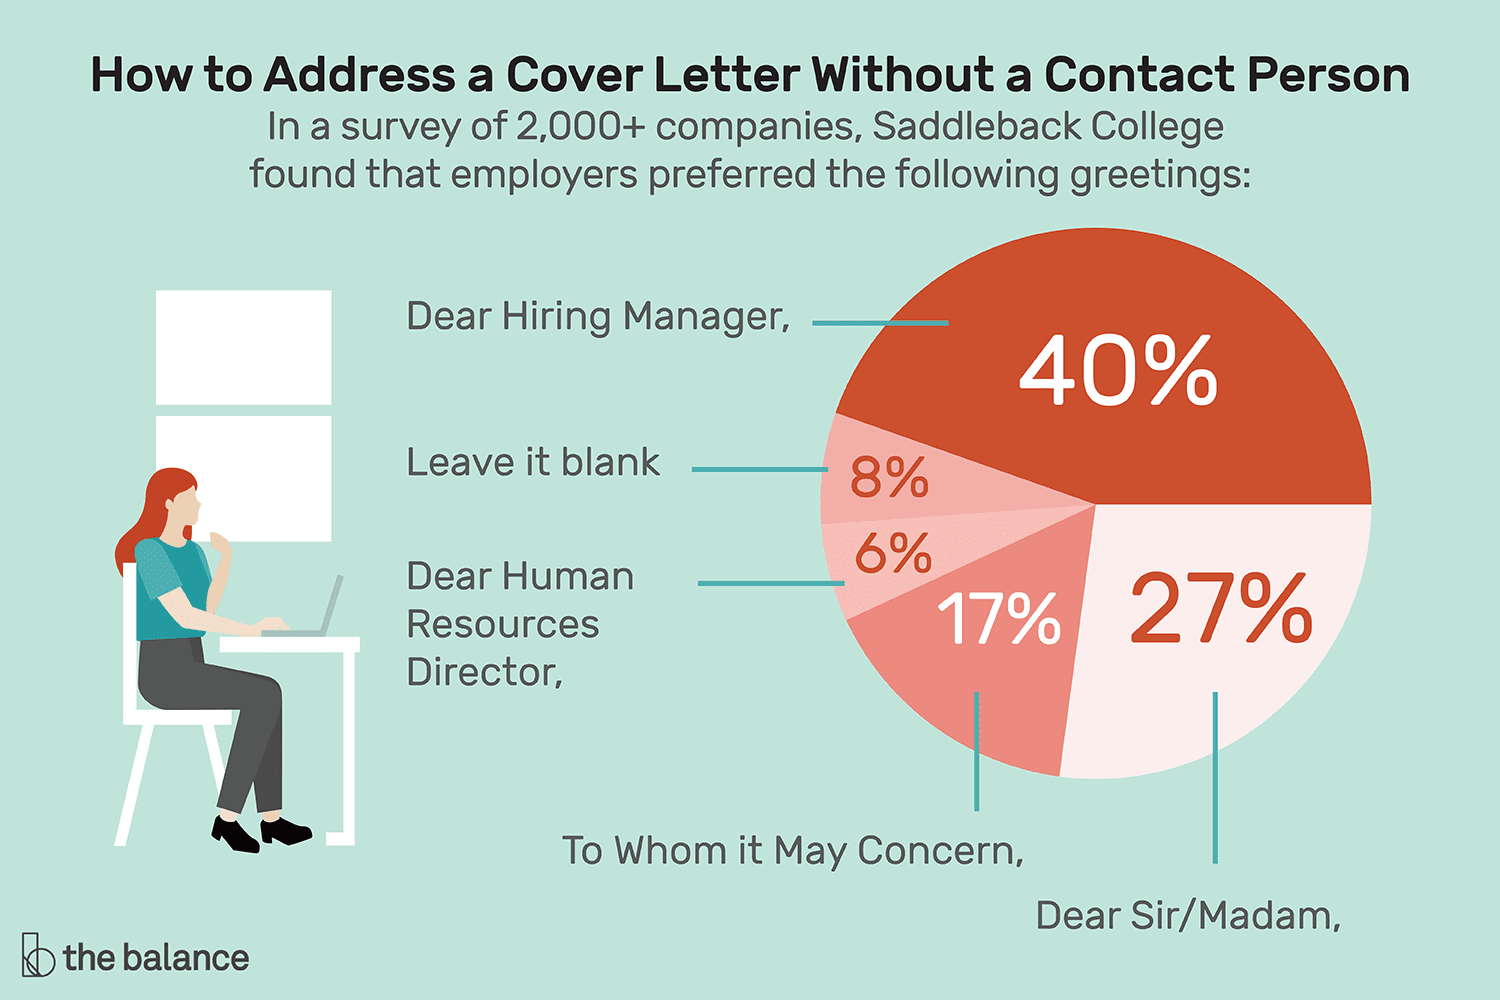 How To Address A Cover Letter Without Contact Person